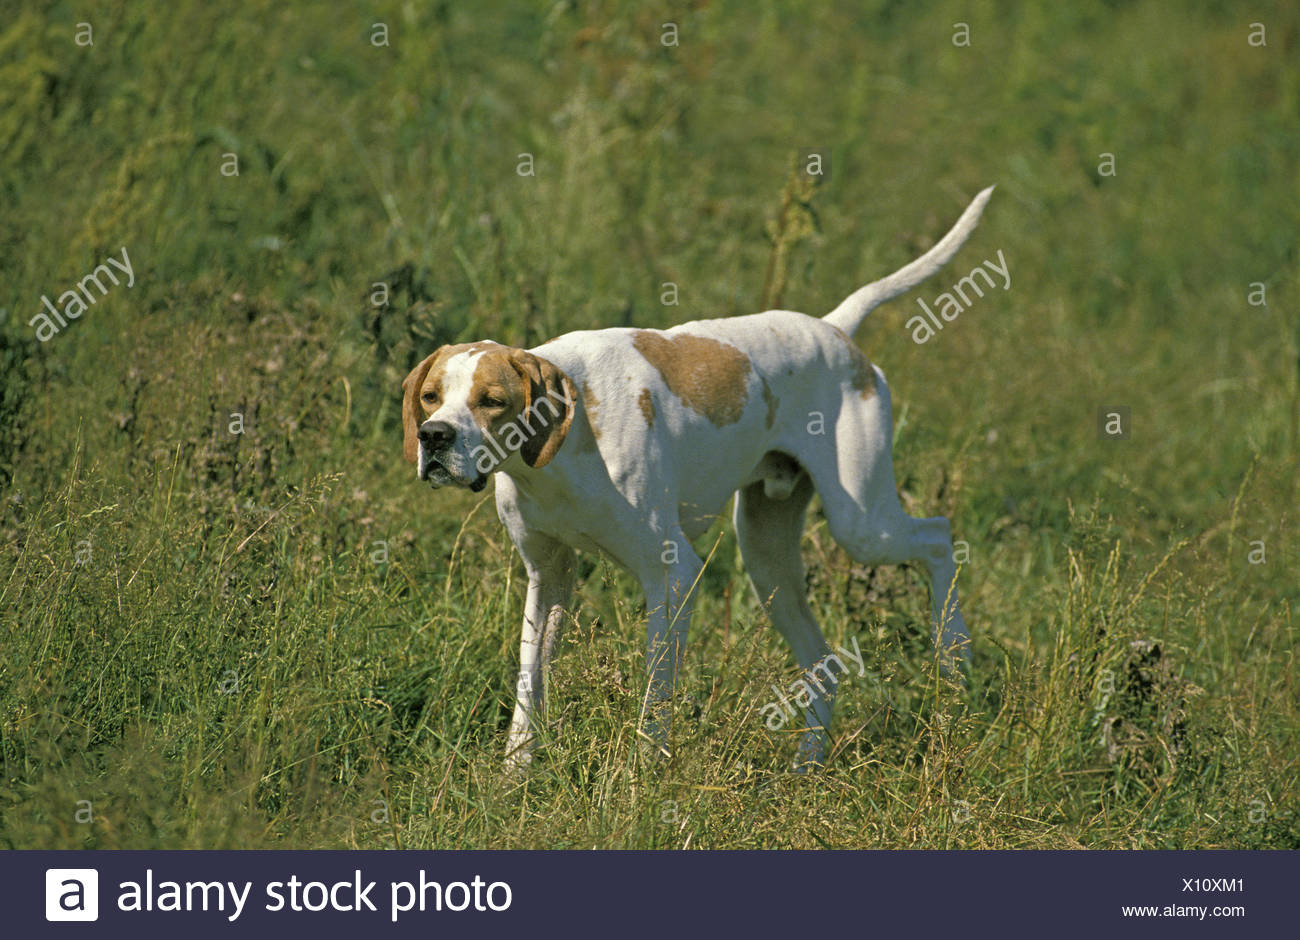 Male Pointer Dog in Field - Stock Image